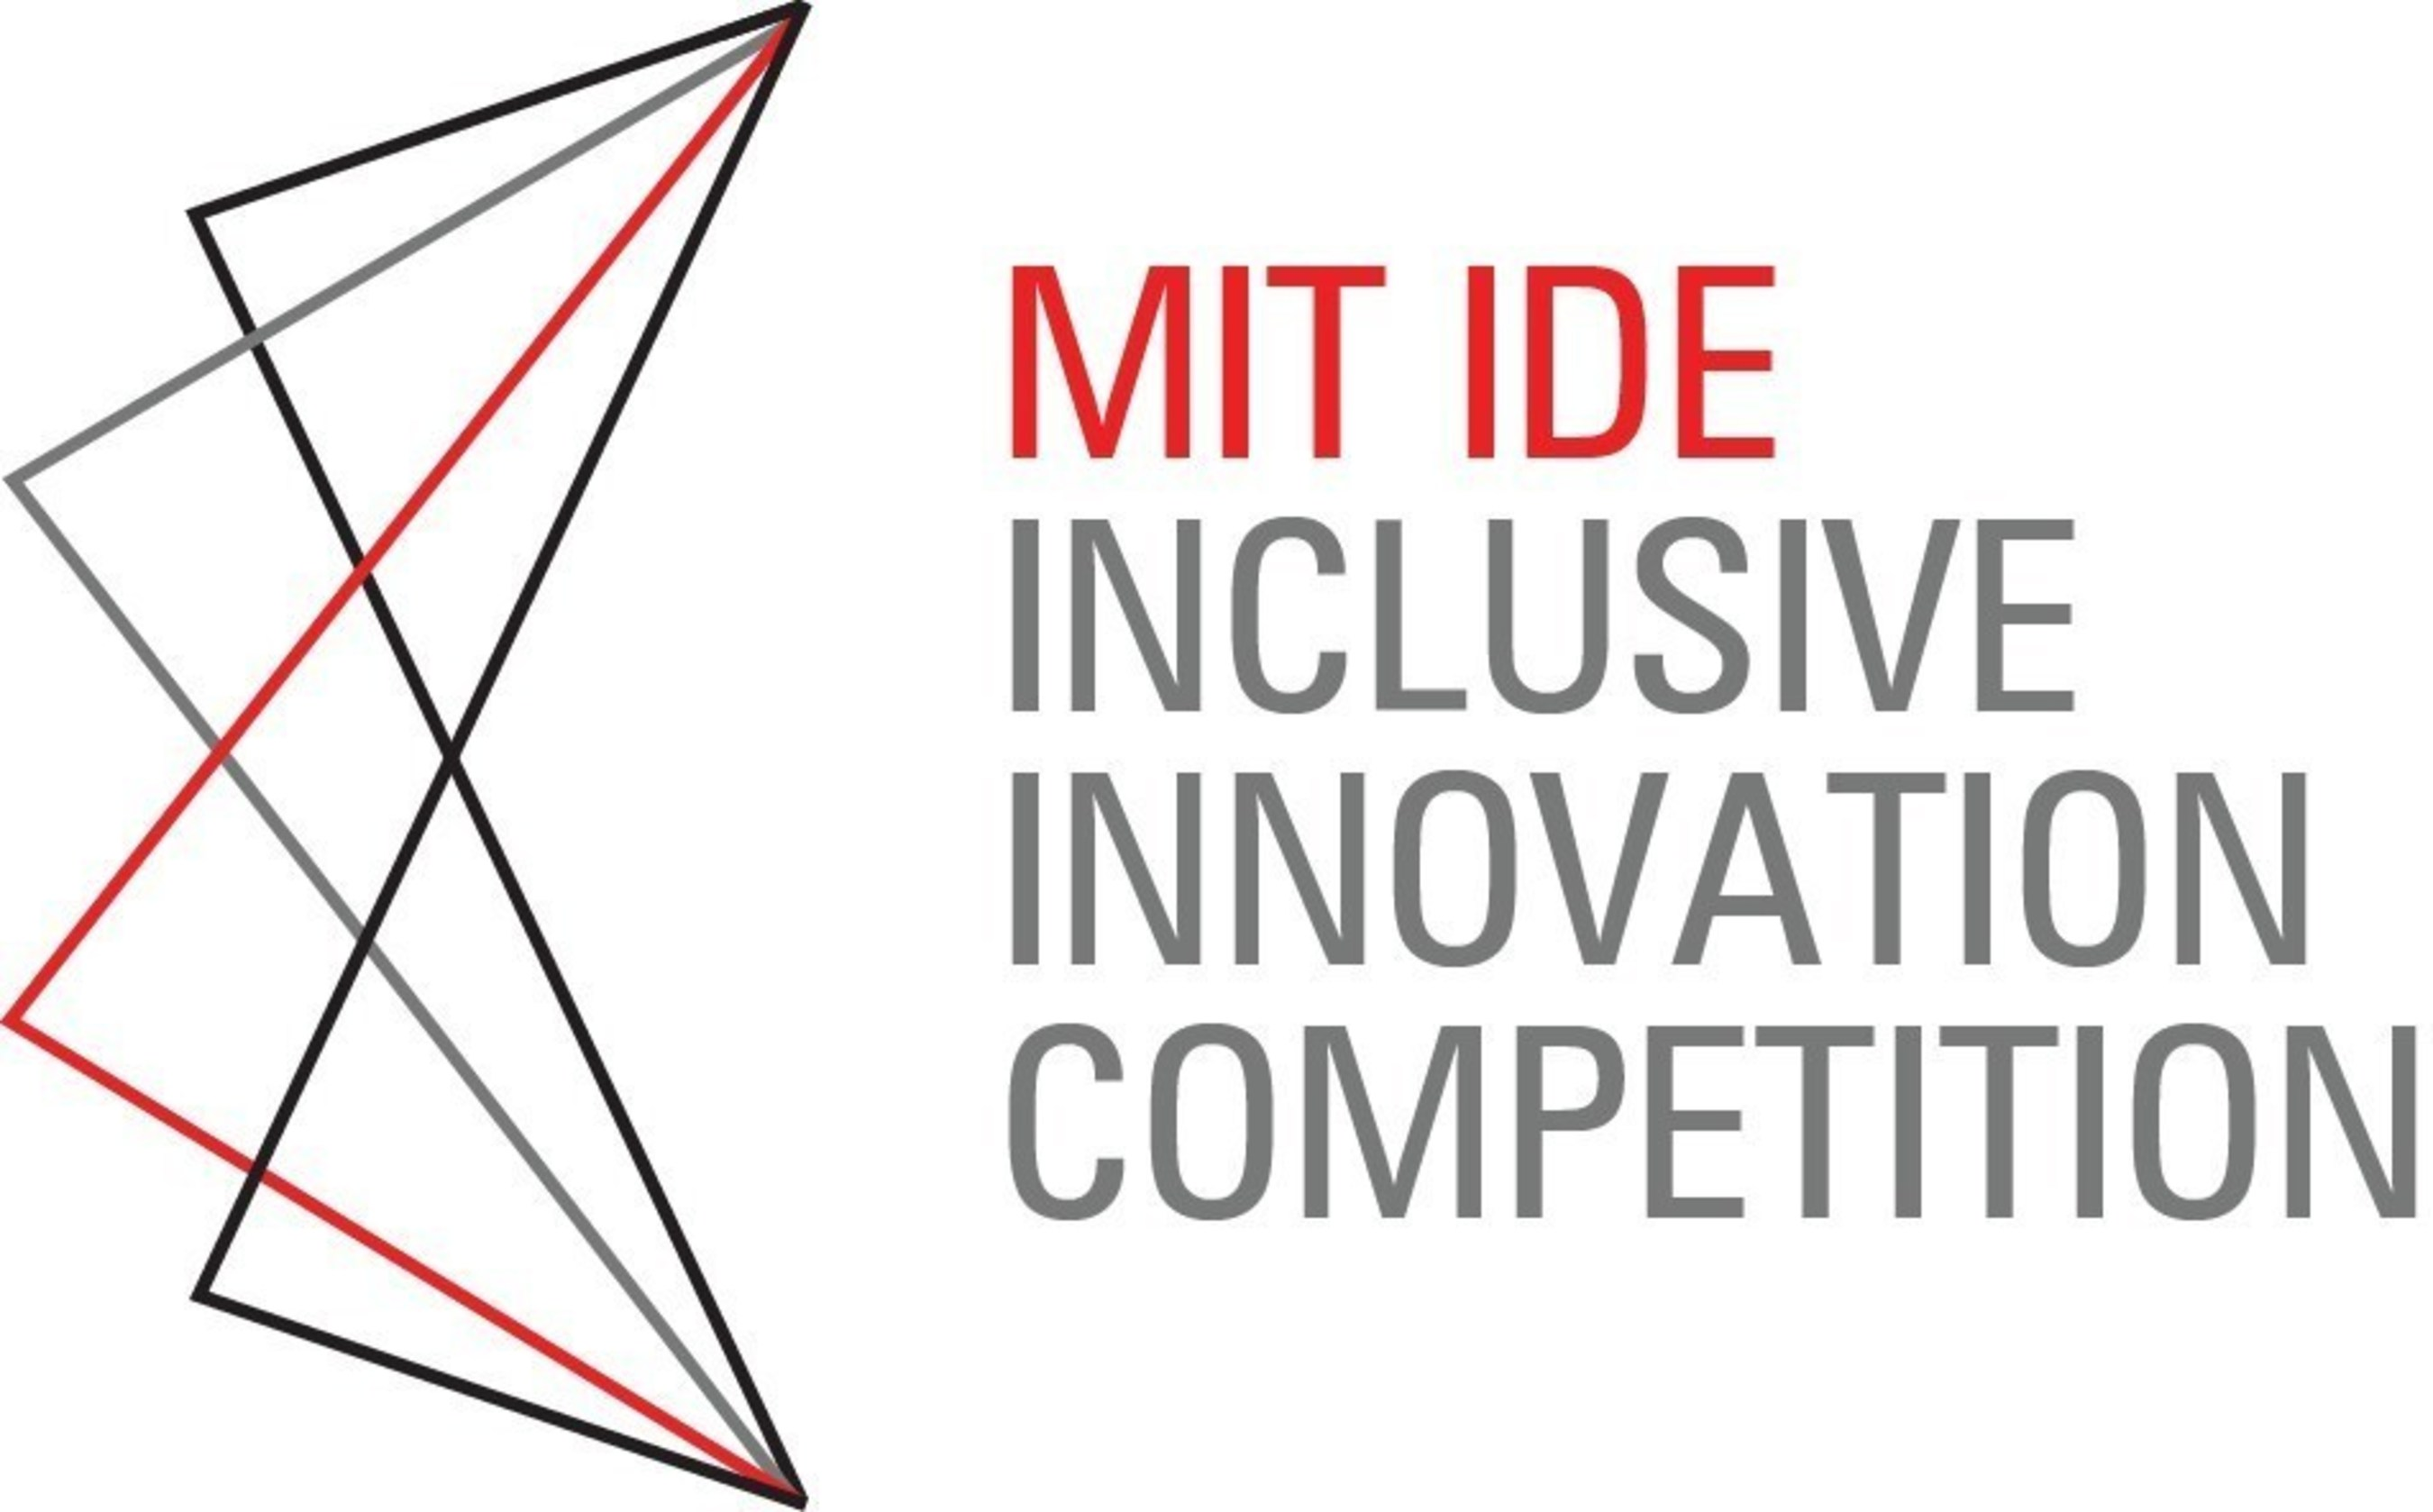 MIT's inaugural Inclusive Innovation Competition awards $1 million to organizations harnessing technology to create economic opportunities for low-and middle-wage worker